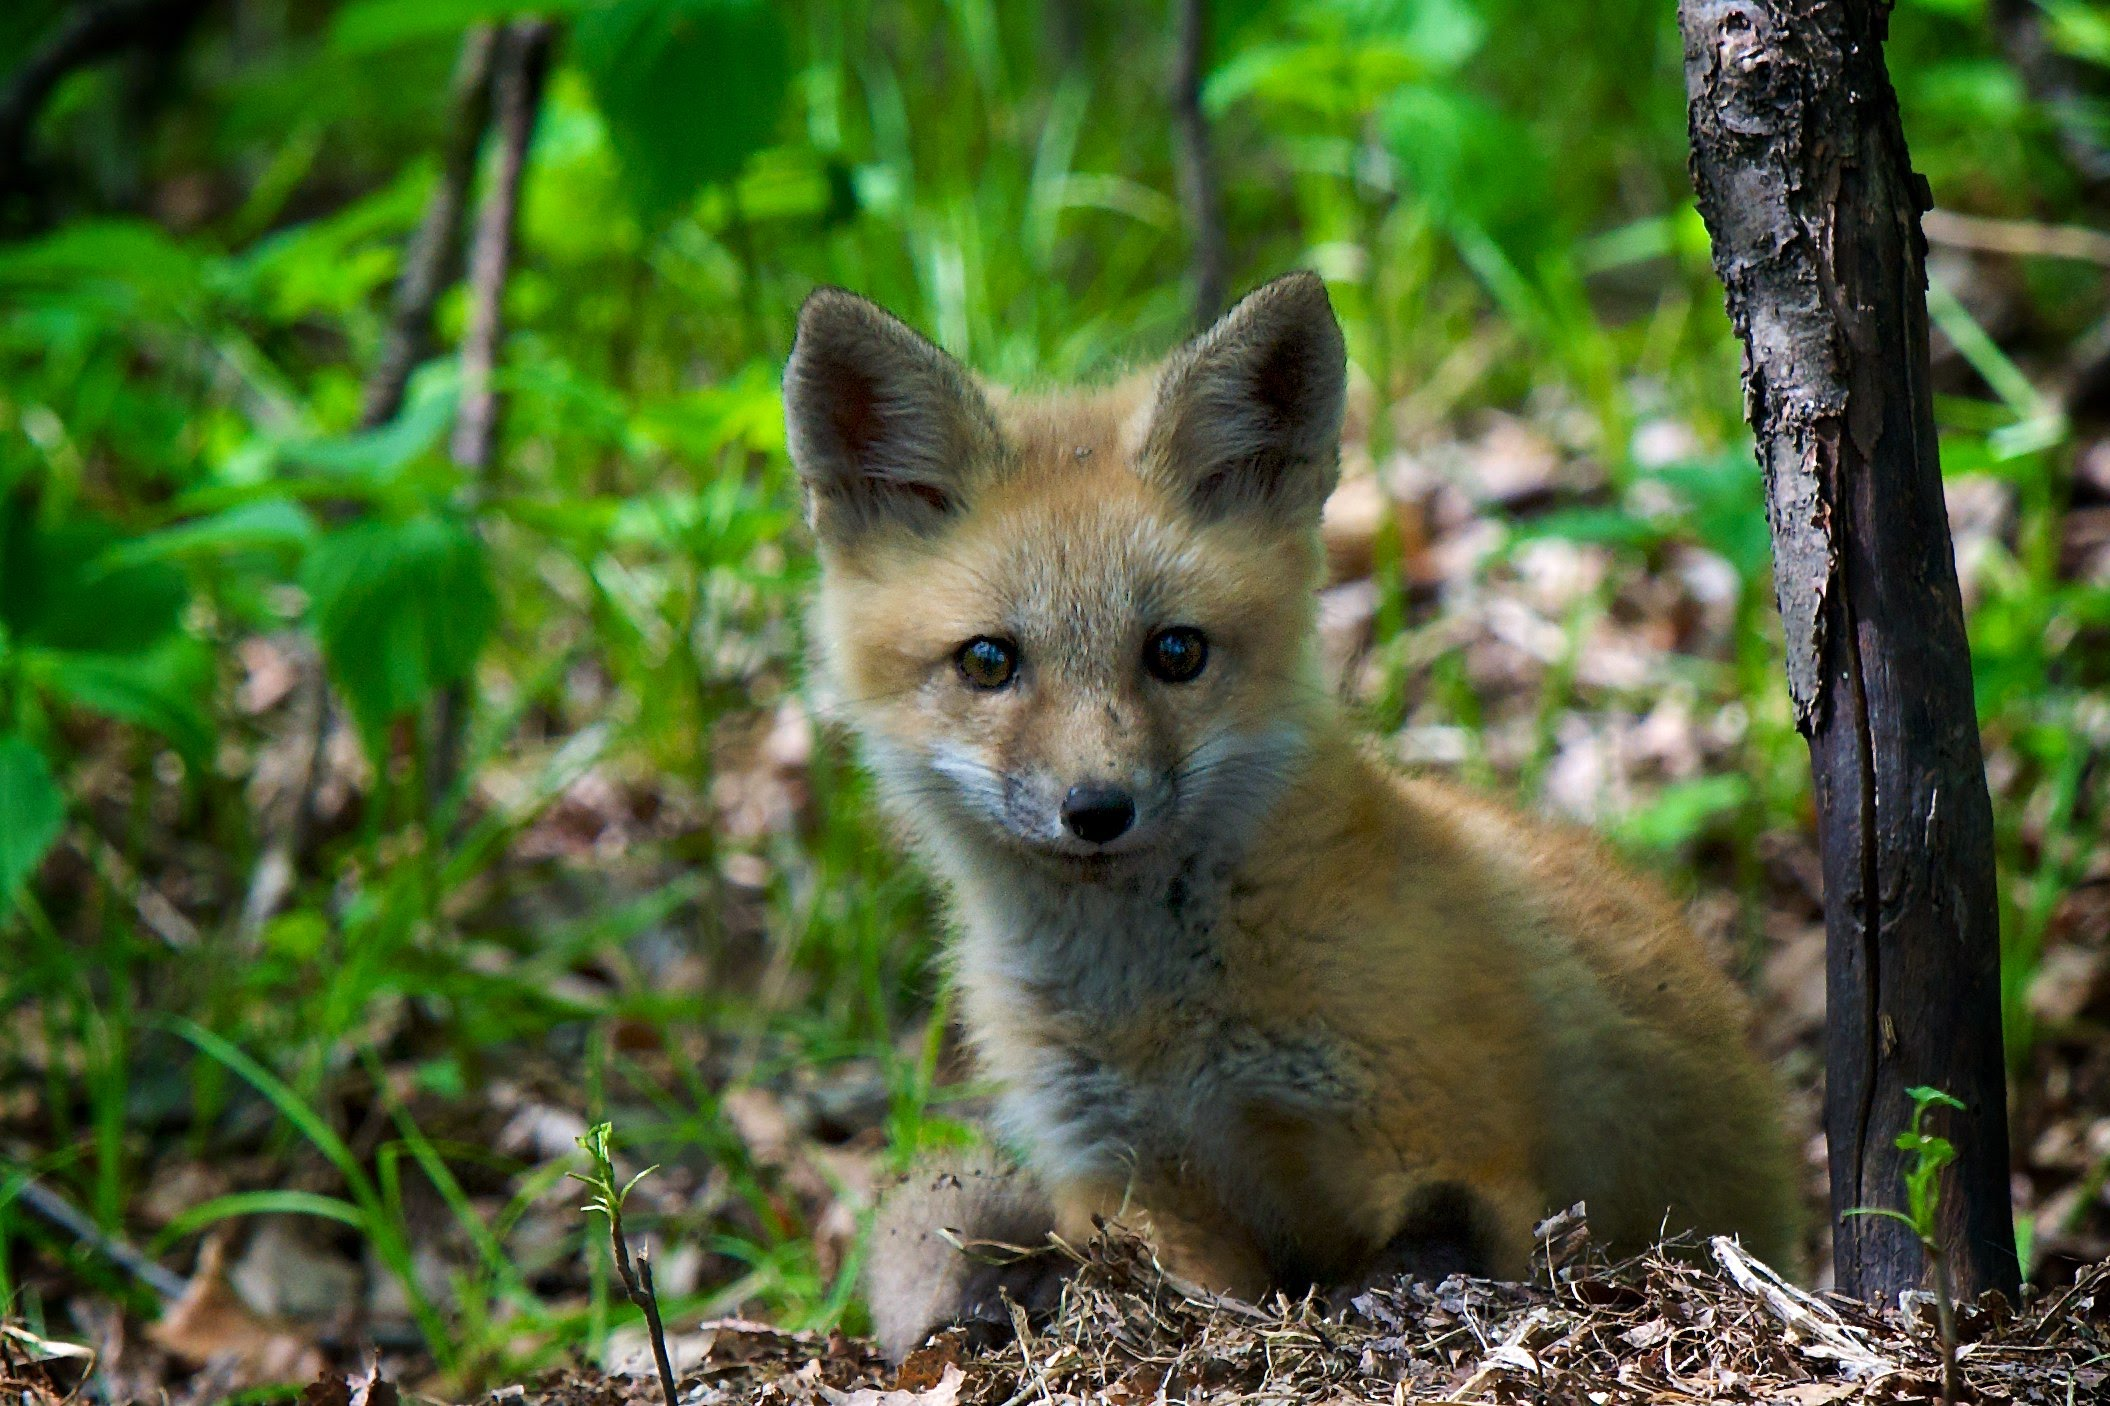 A young fox looks alert in the forest